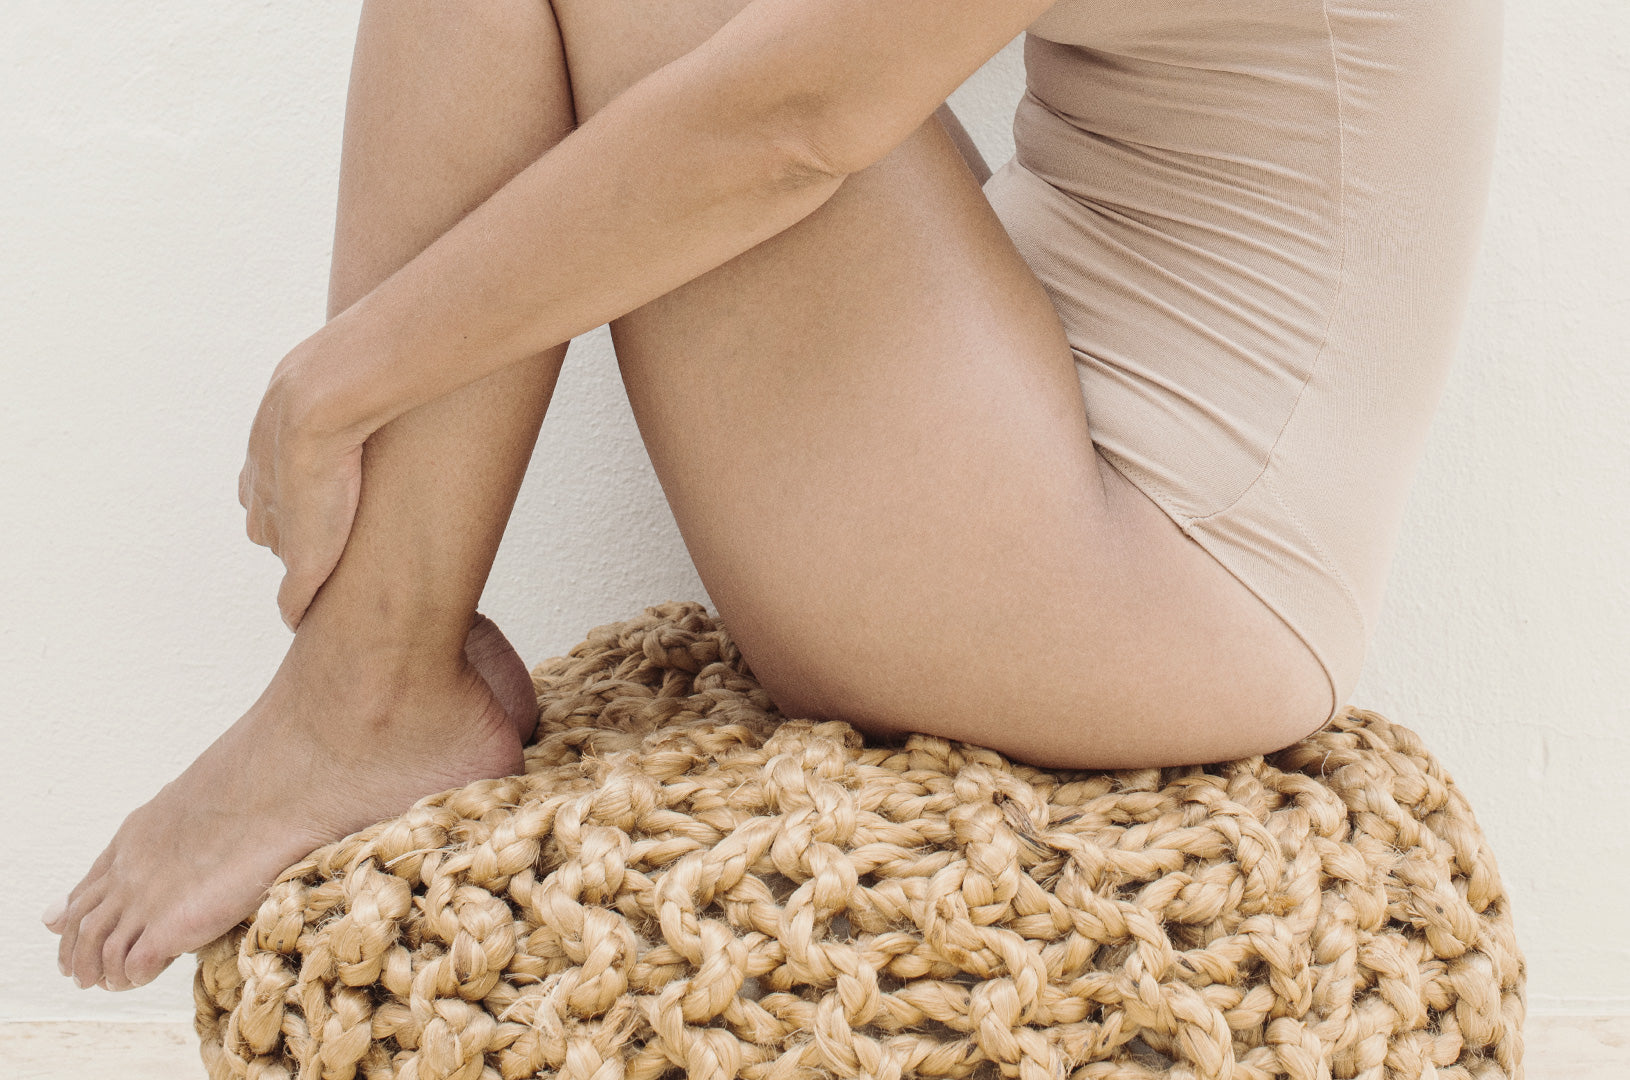 How to treat your cellulite concerns